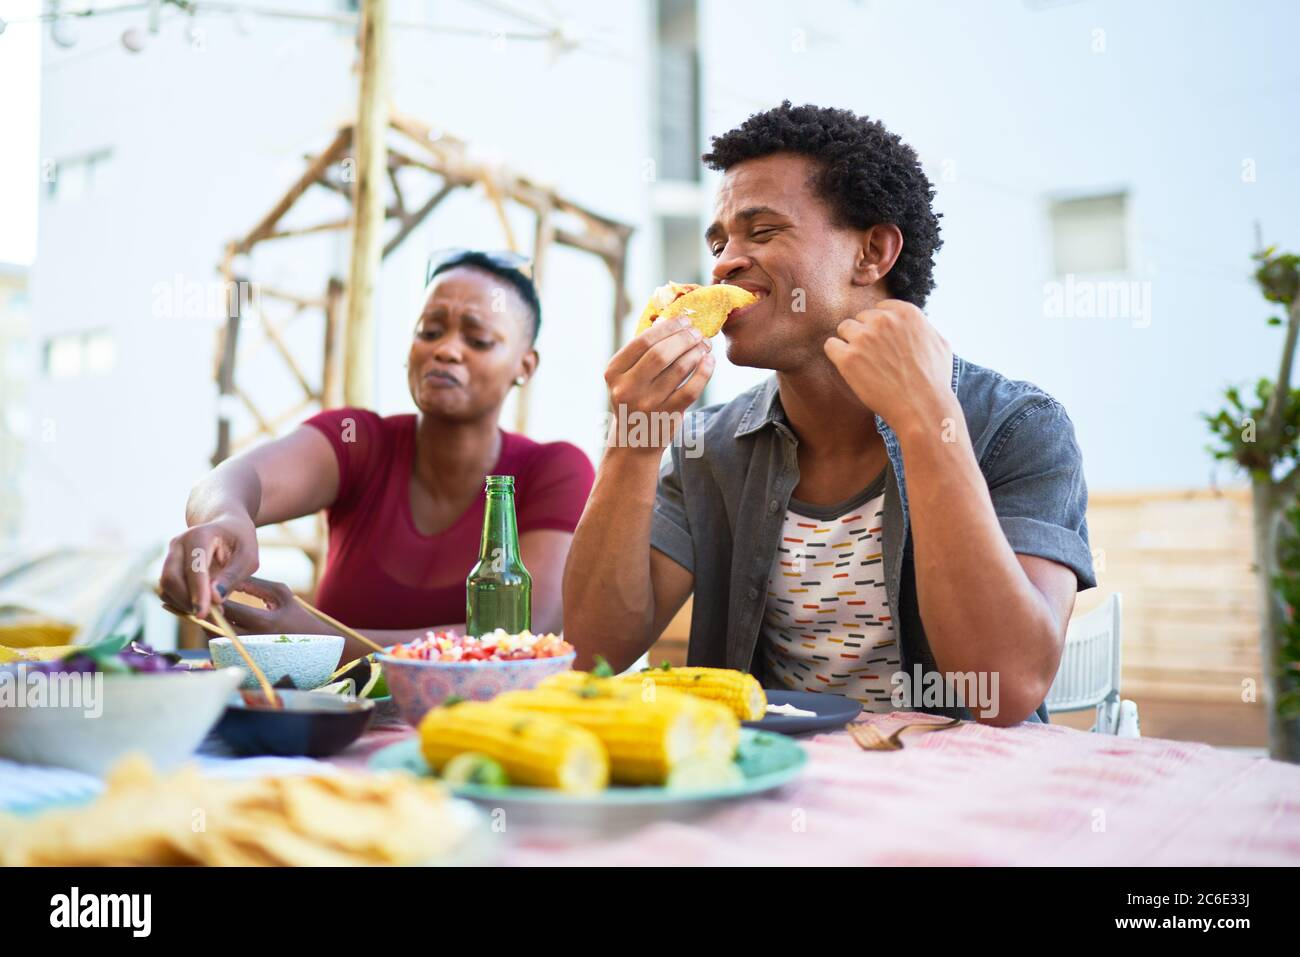 Young man eating taco lunch at patio table Stock Photo